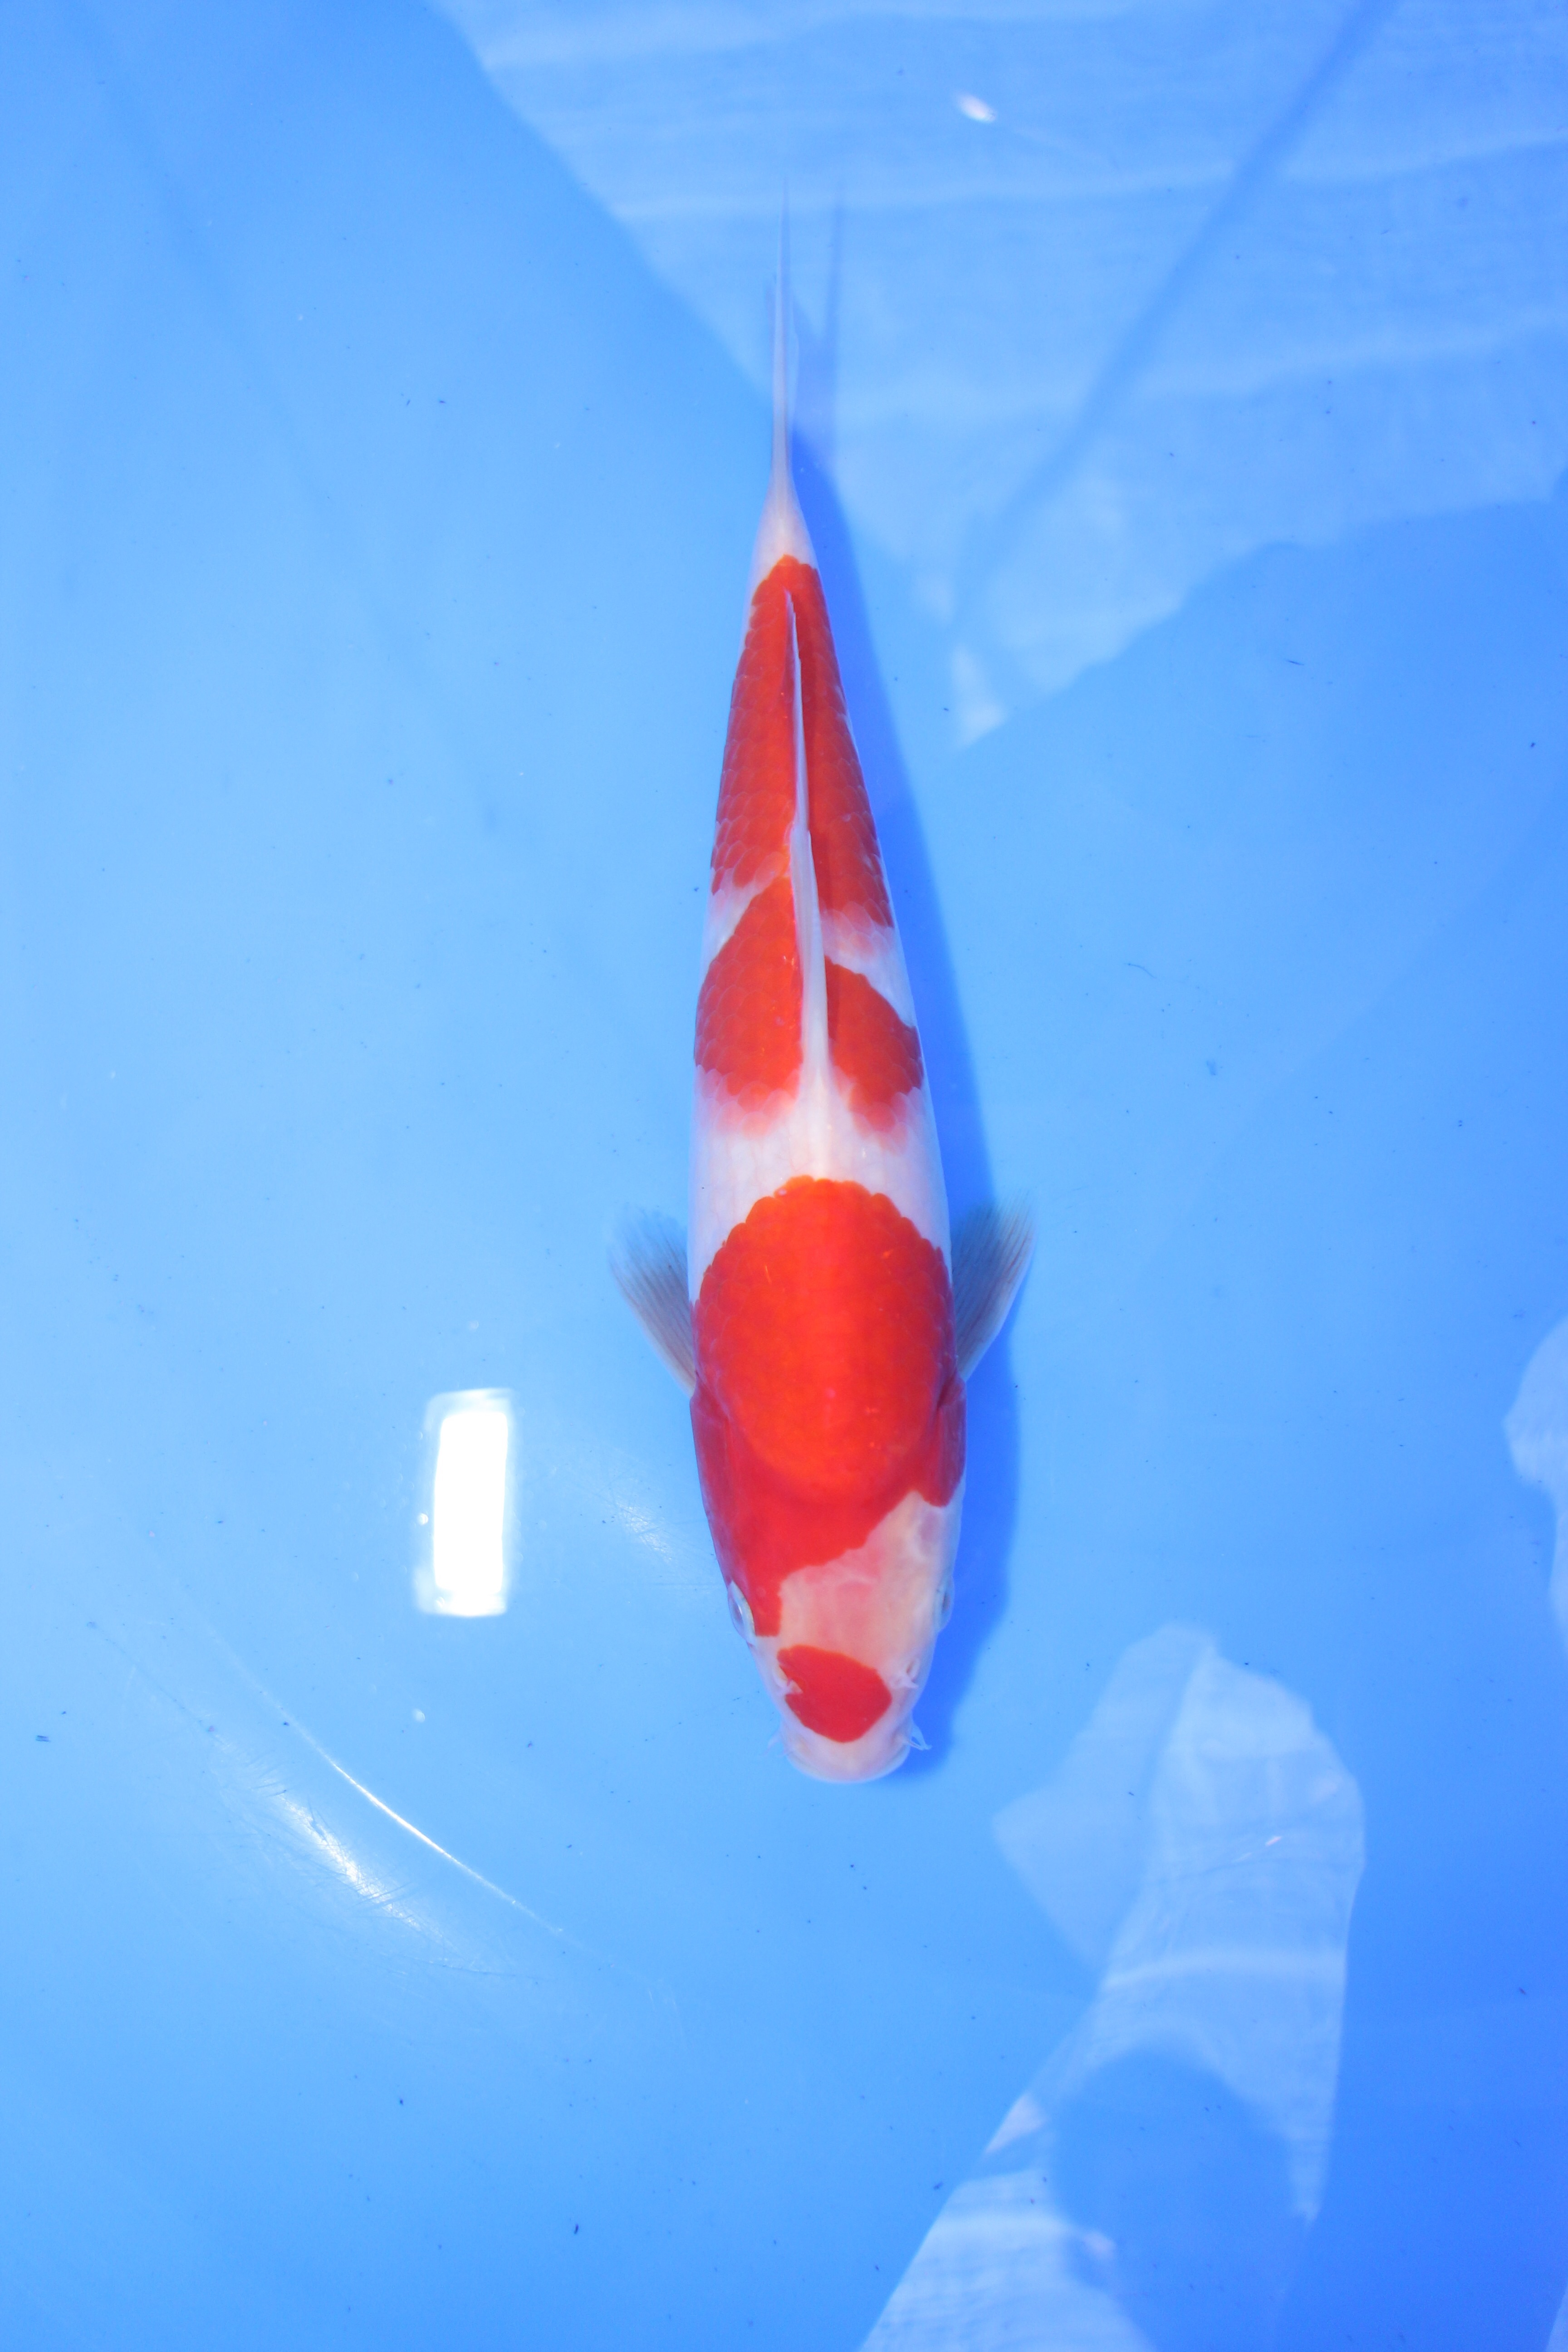 Kuchibeni kohaku koi for sale koi answers all your for Kohaku koi fish for sale